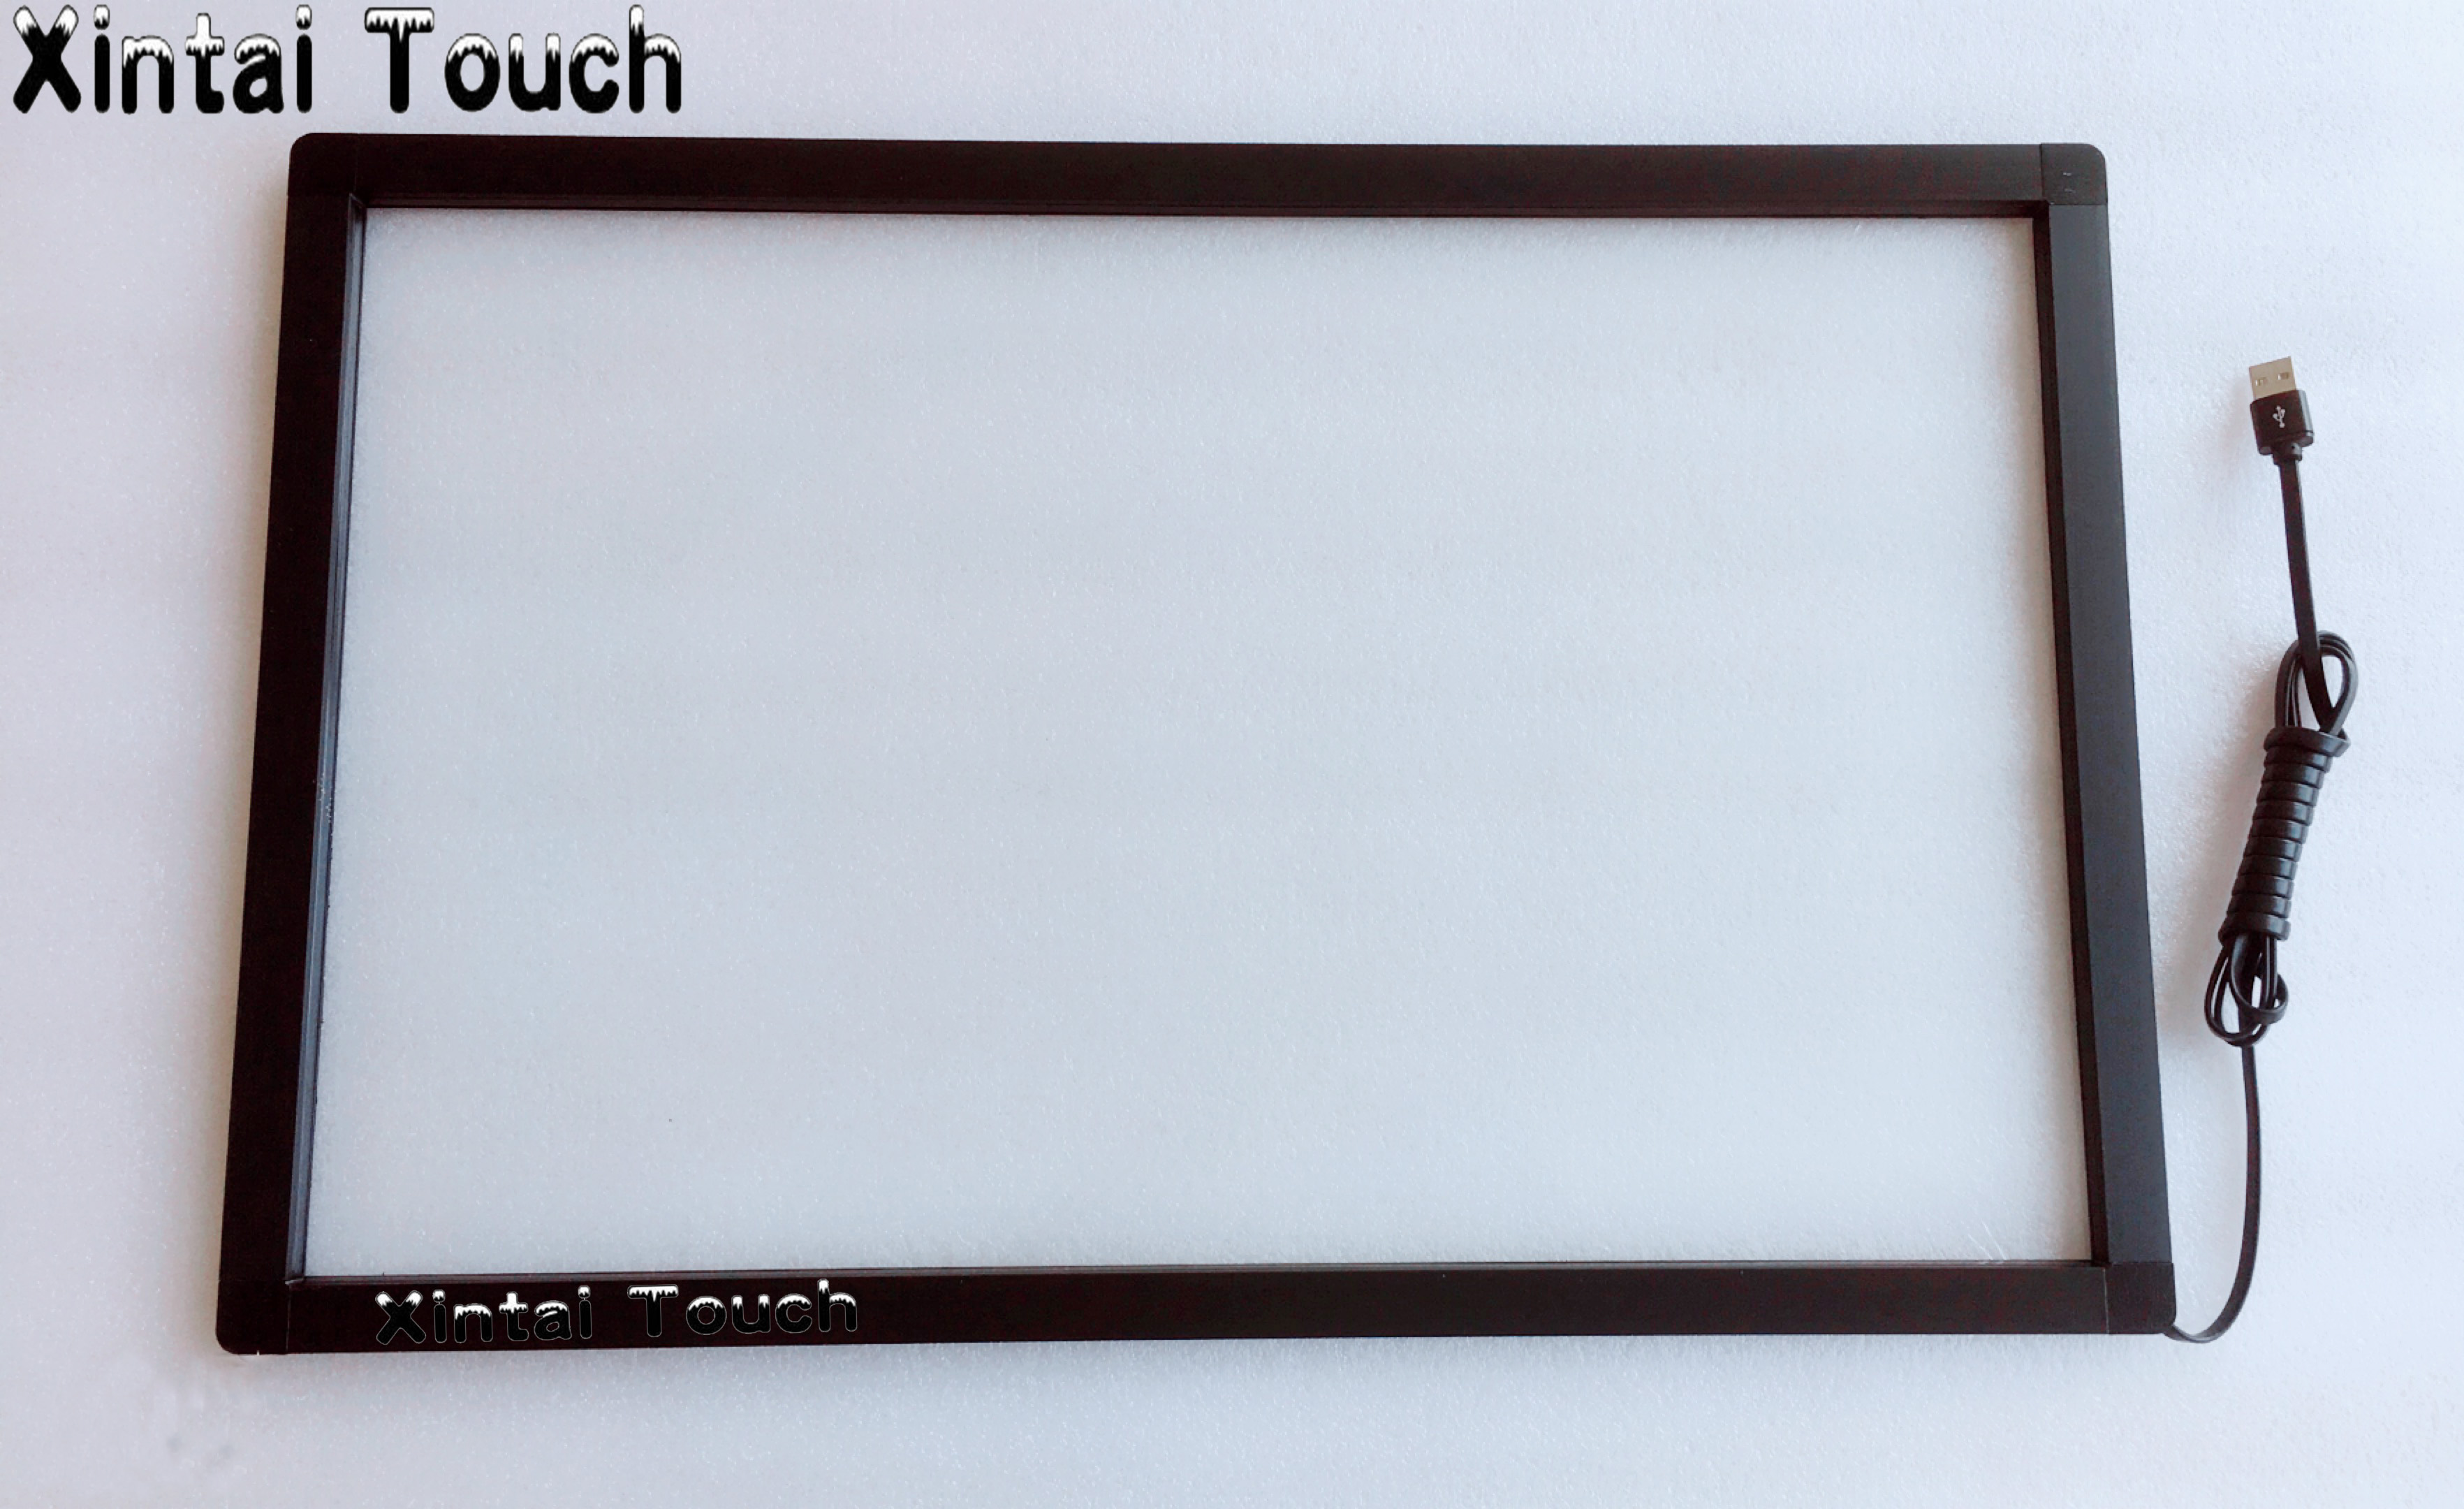 Low Price 21.5 inch Infrared Multi Touch Screen Overlay Kit for Interactive Table, Interactive Wall, Multi Touch Screen